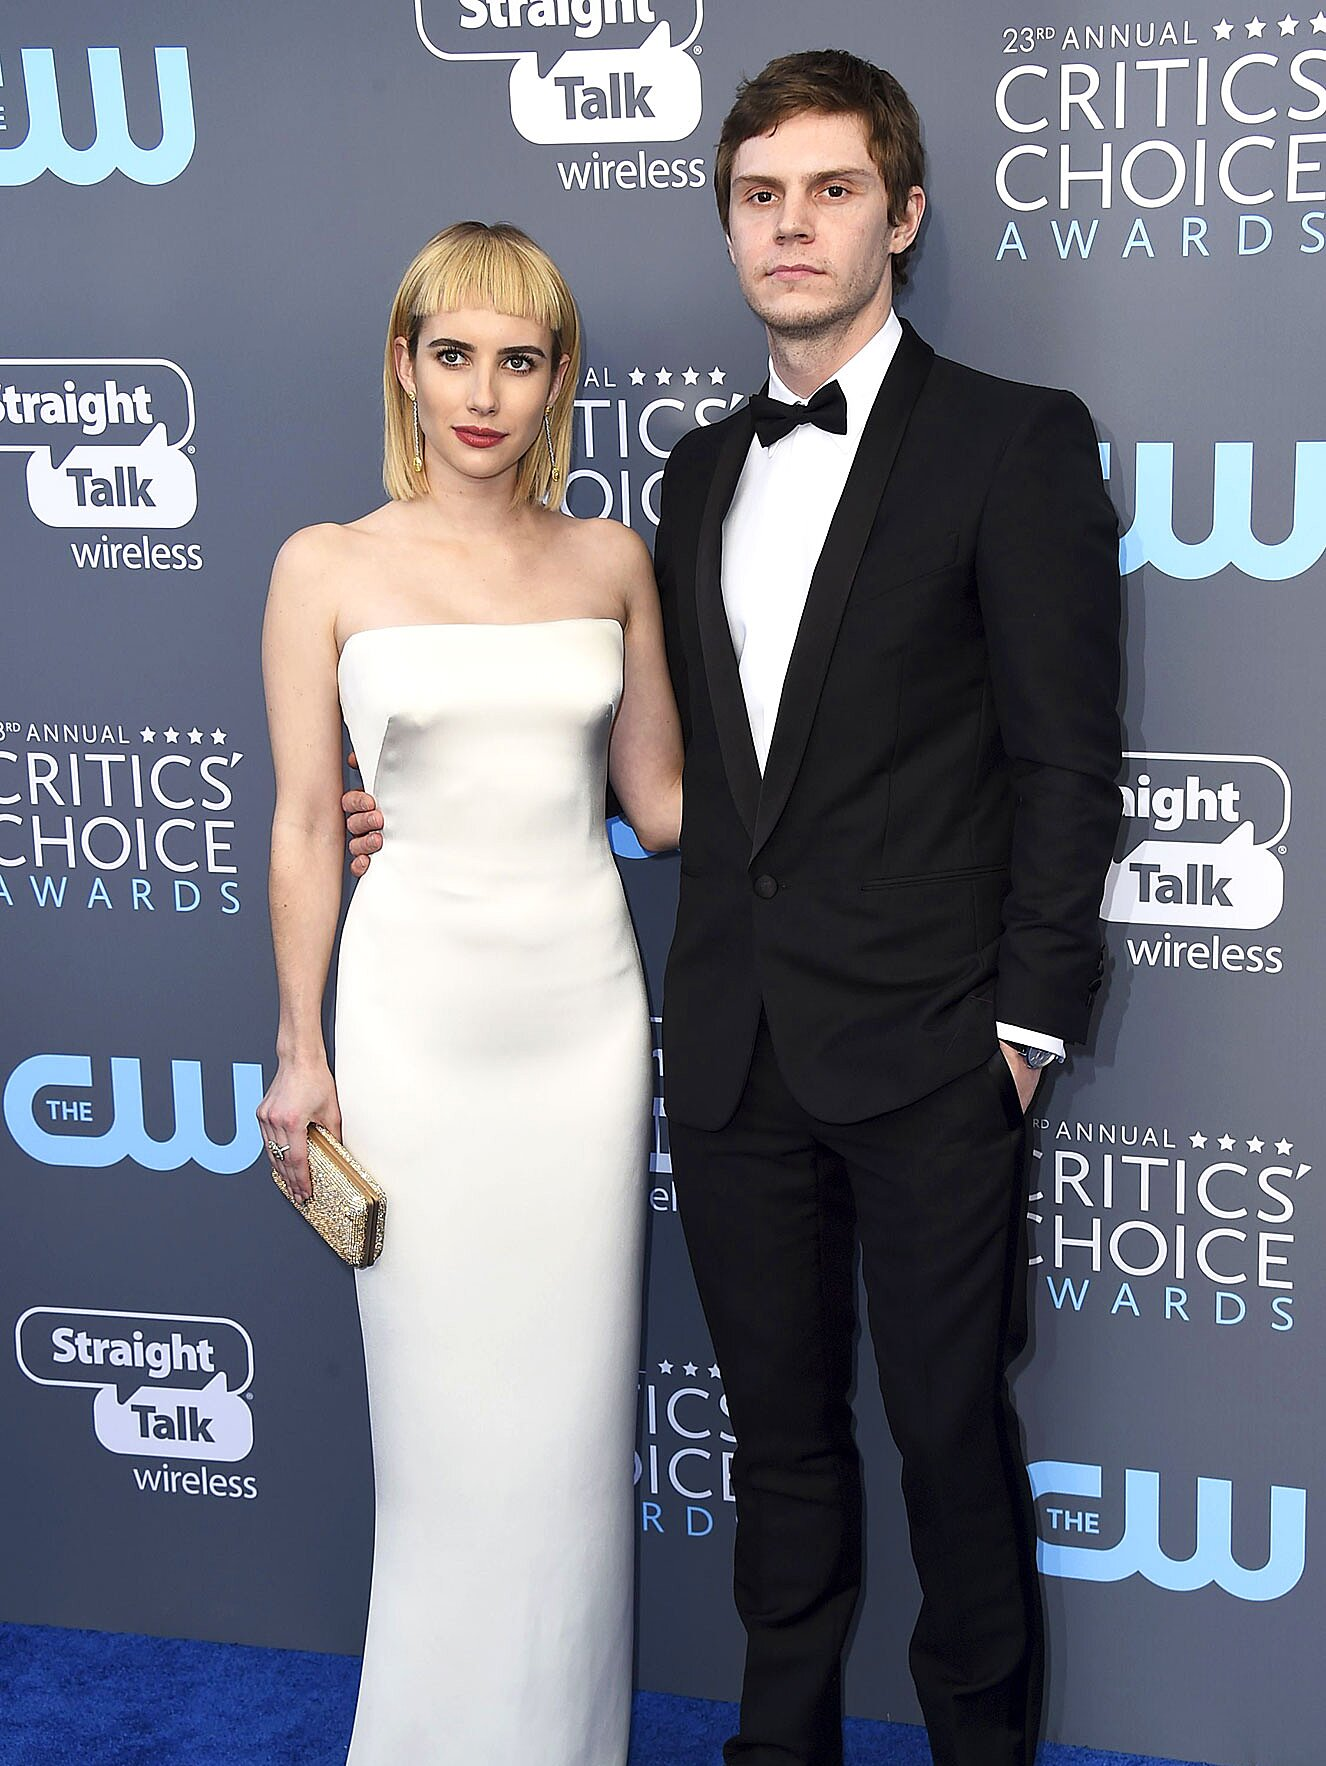 Emma Roberts and Evan Peters Split After 7 Years Together | PEOPLE.com